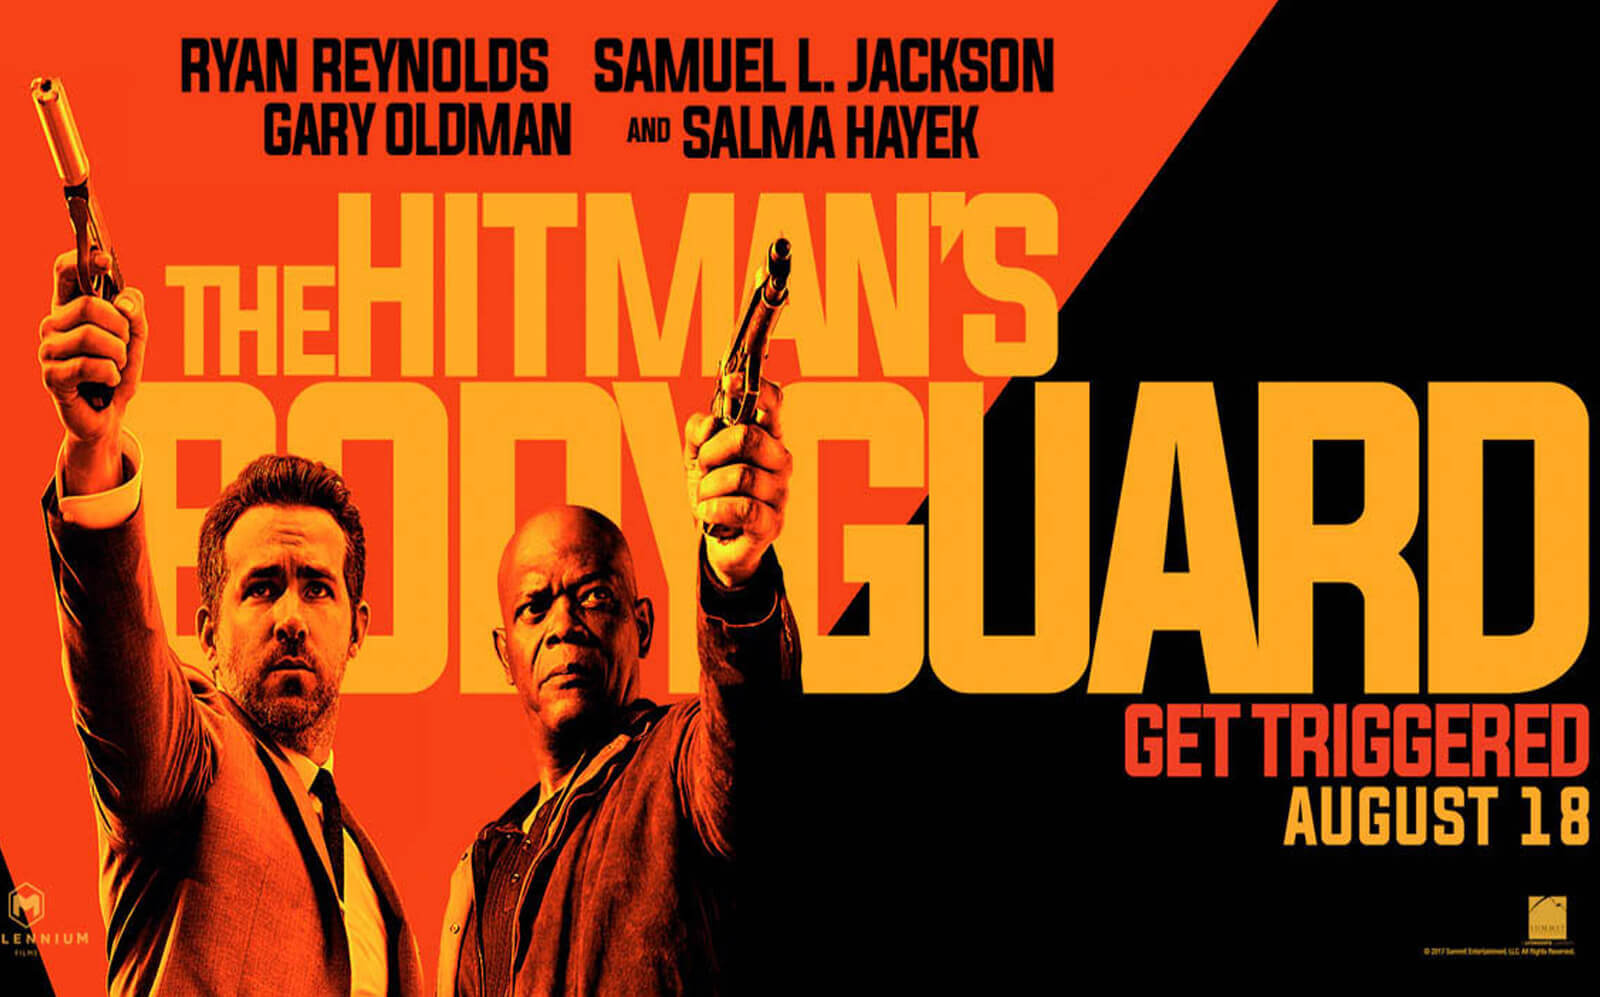 Reynolds And Jackson To Return In Hitman's Bodyguard 2.